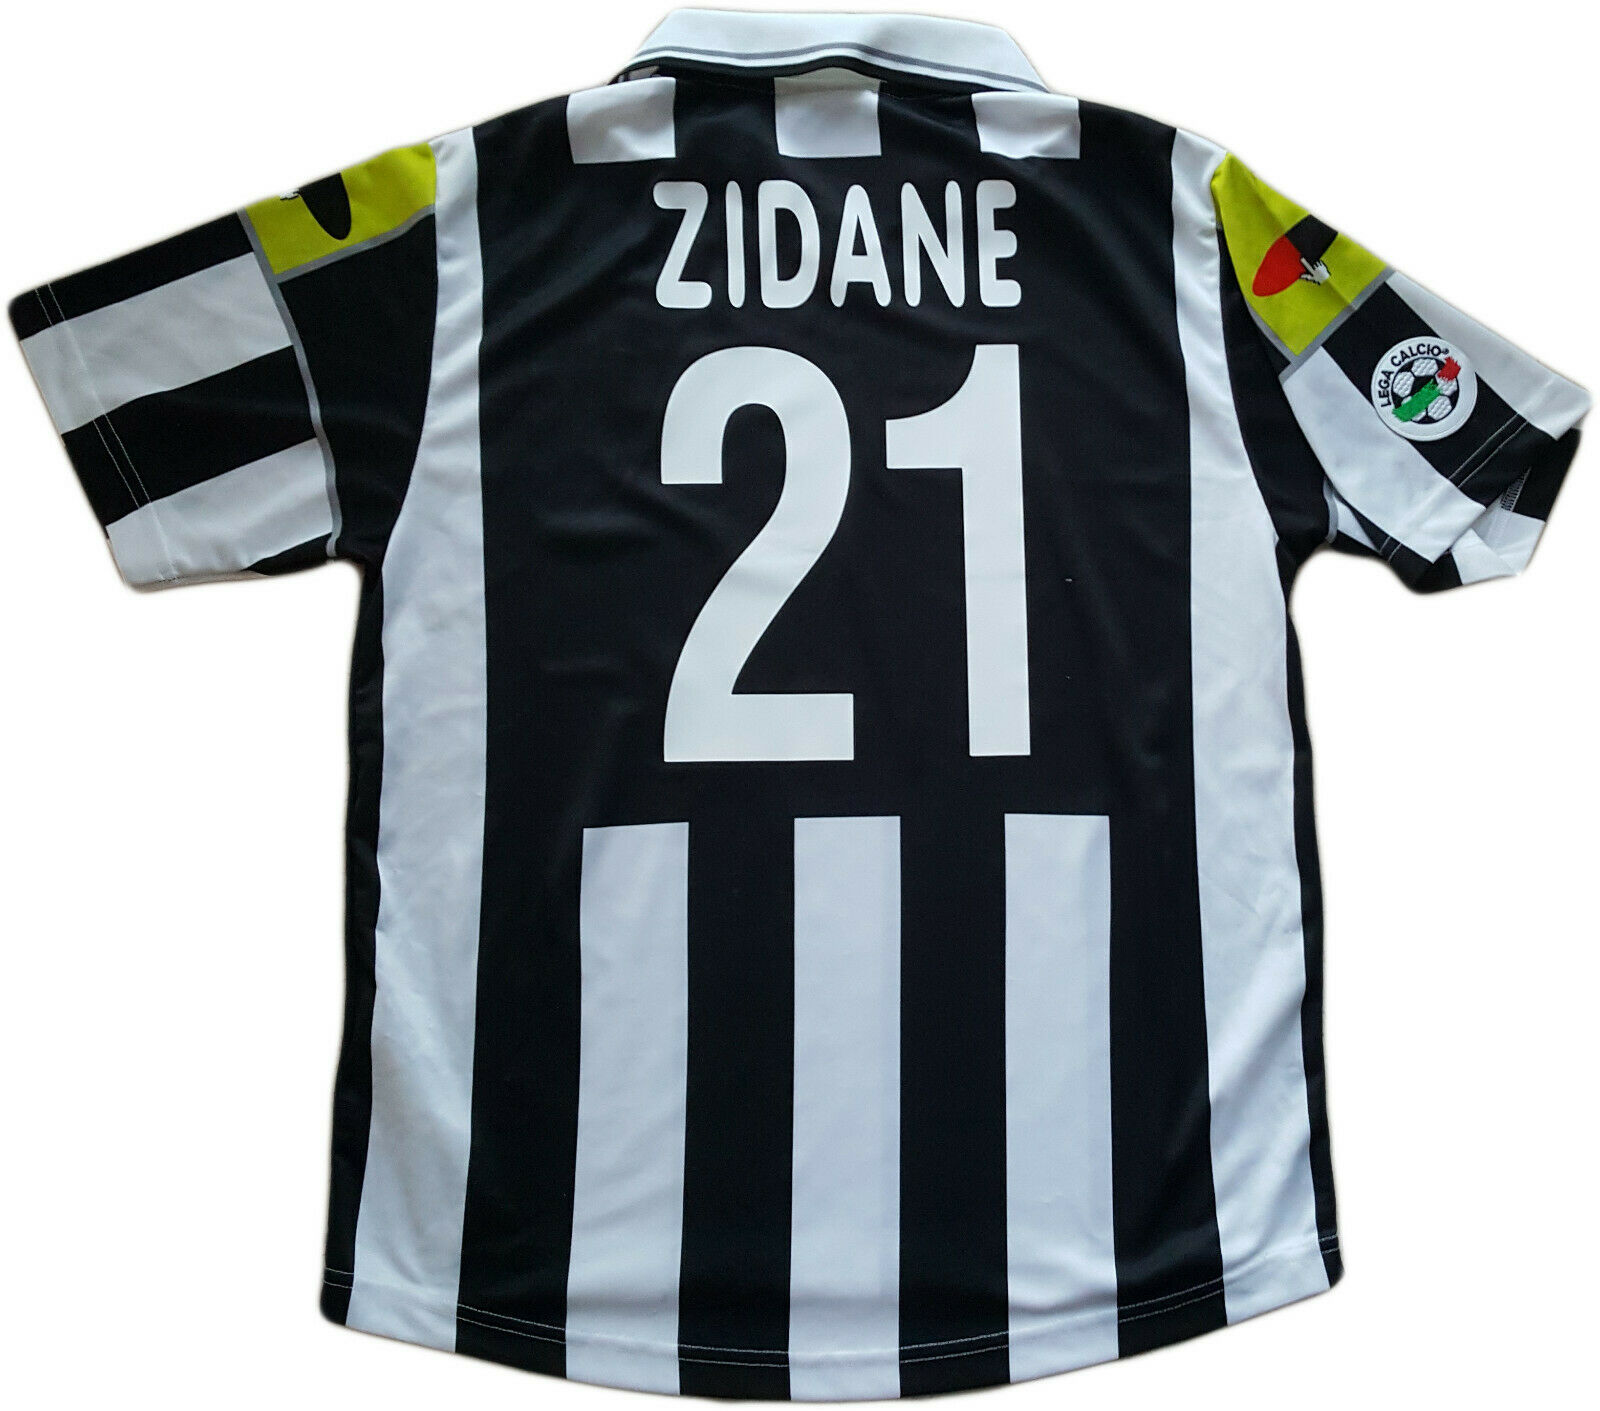 Maglia juventus zidane Lotto 2000 2001 L away Uefa champions League Jersey